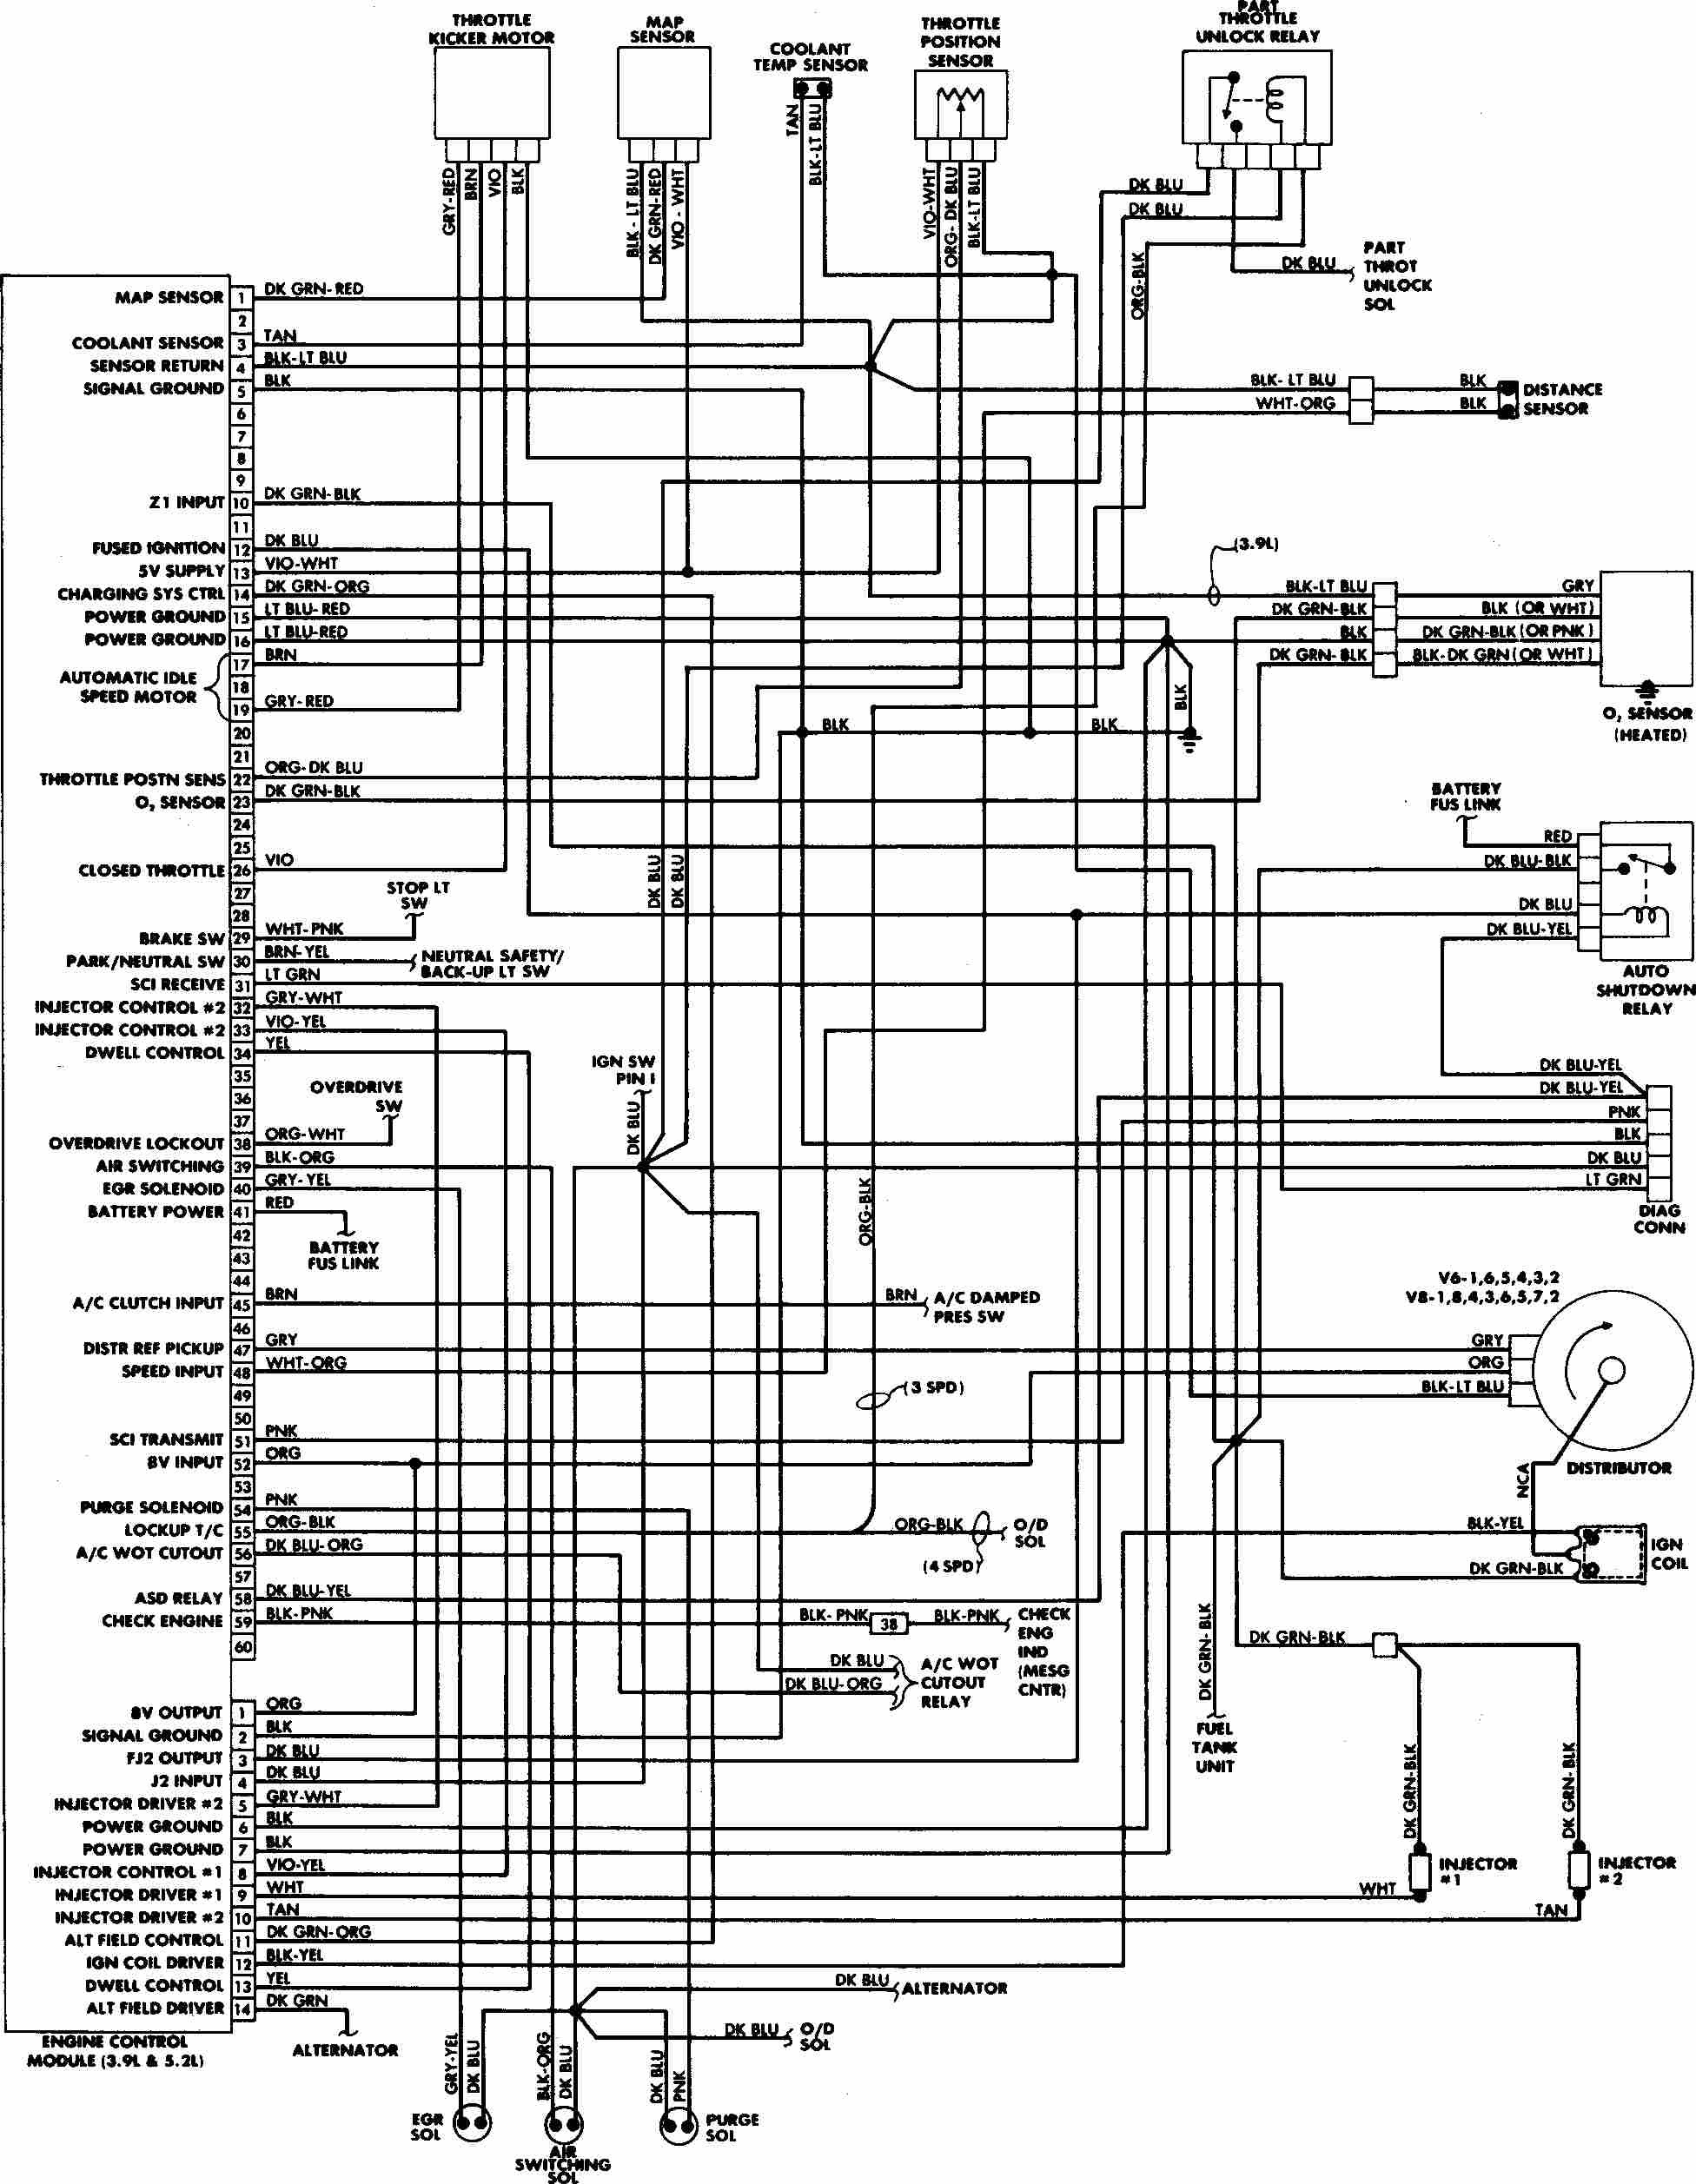 ed7794 fuse box wiring diagram for 2003 dodge dakota | wiring resources  wiring resources